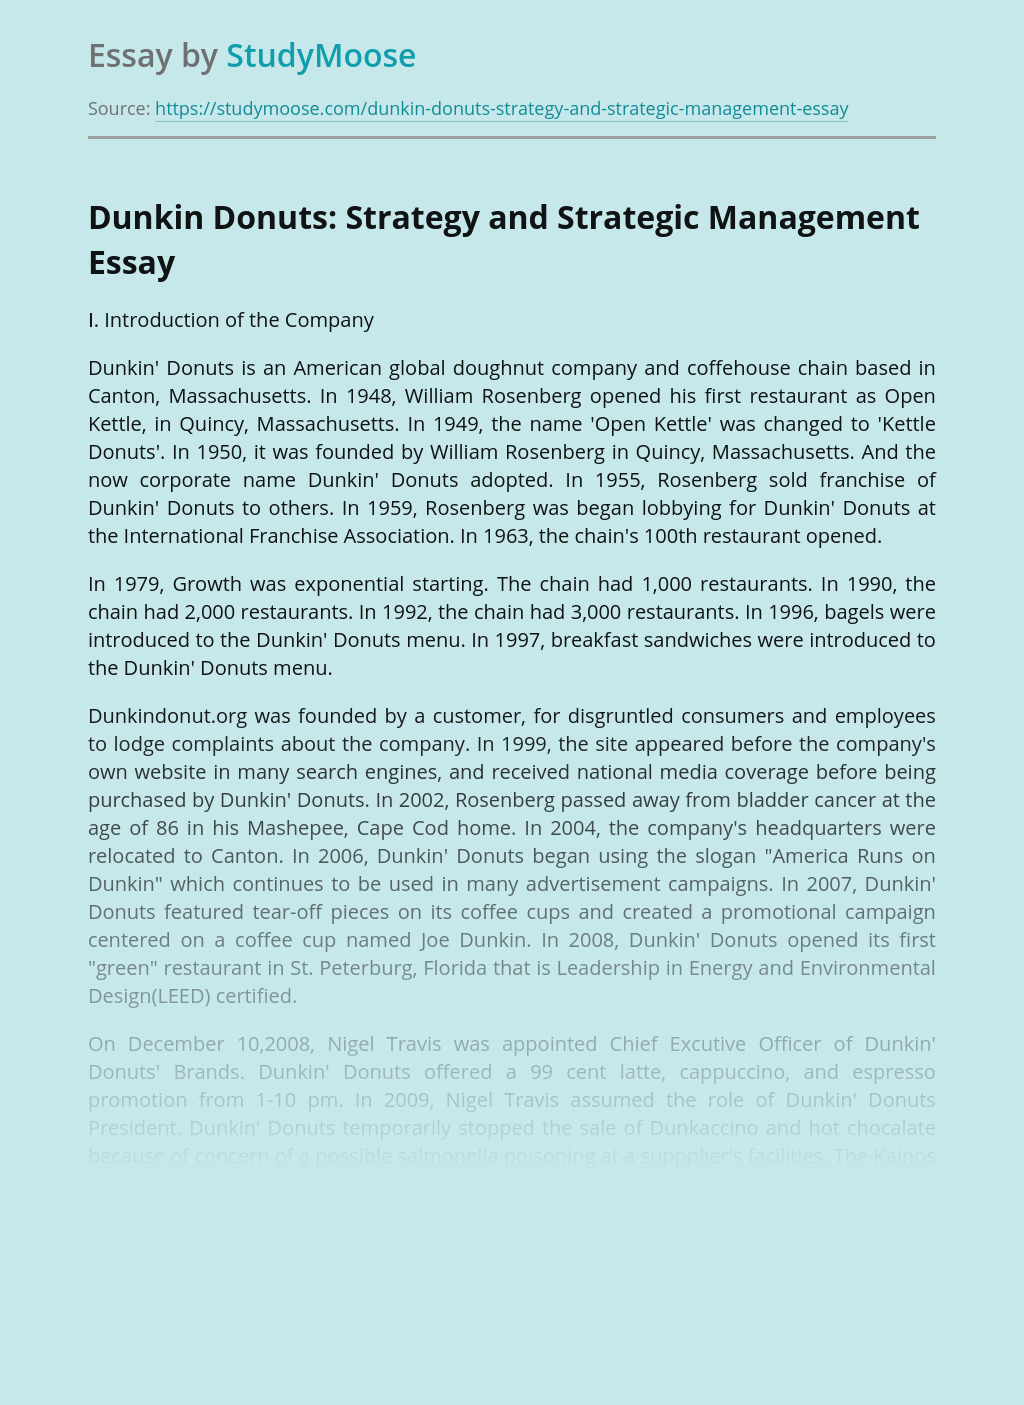 Dunkin Donuts: Strategy and Strategic Management